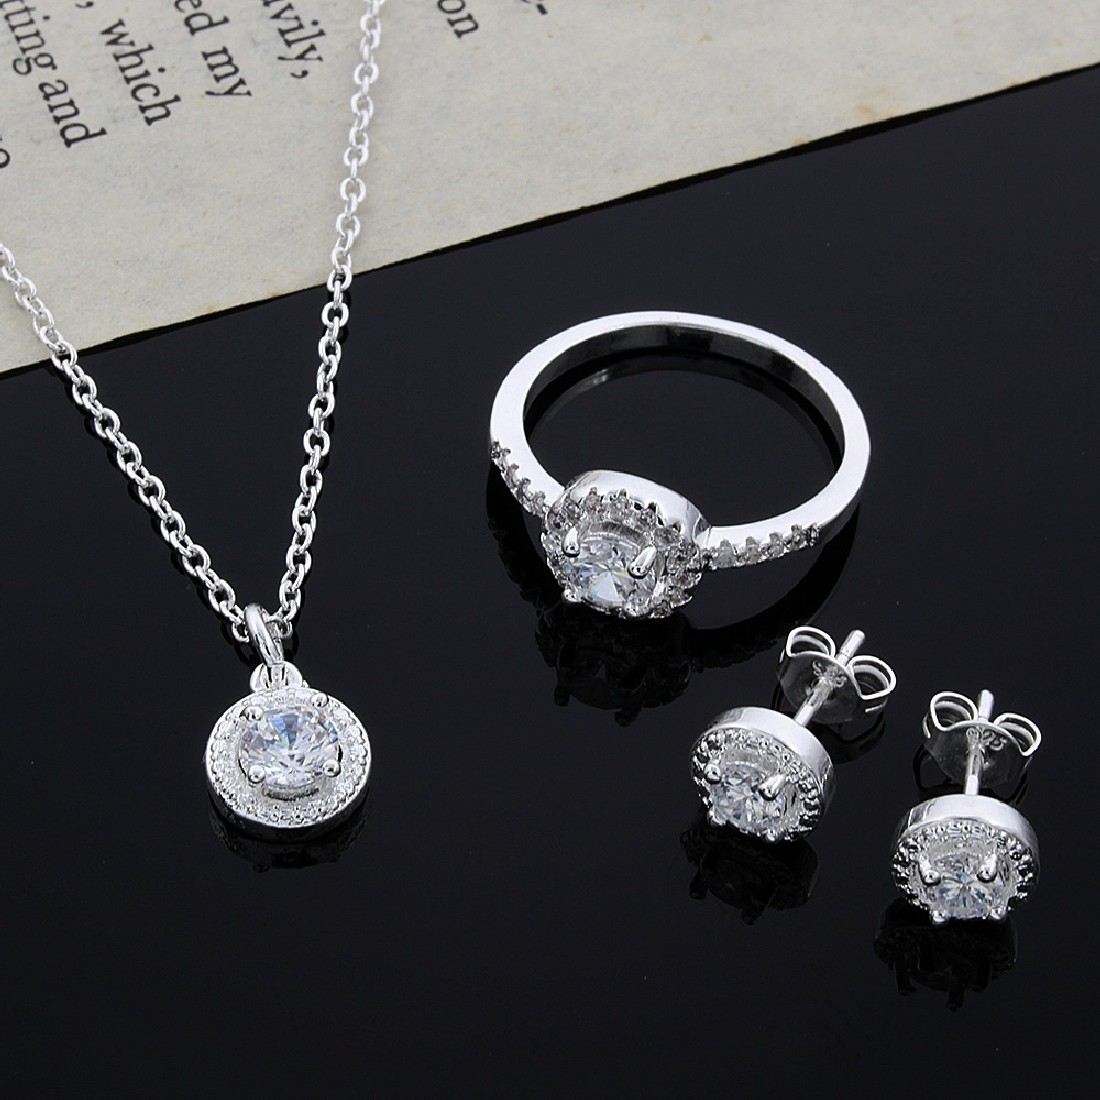 21 Last Minute Mothers Day Gifts Ideas 1 Set Perhiasan Perak Gift Rings And Pendent